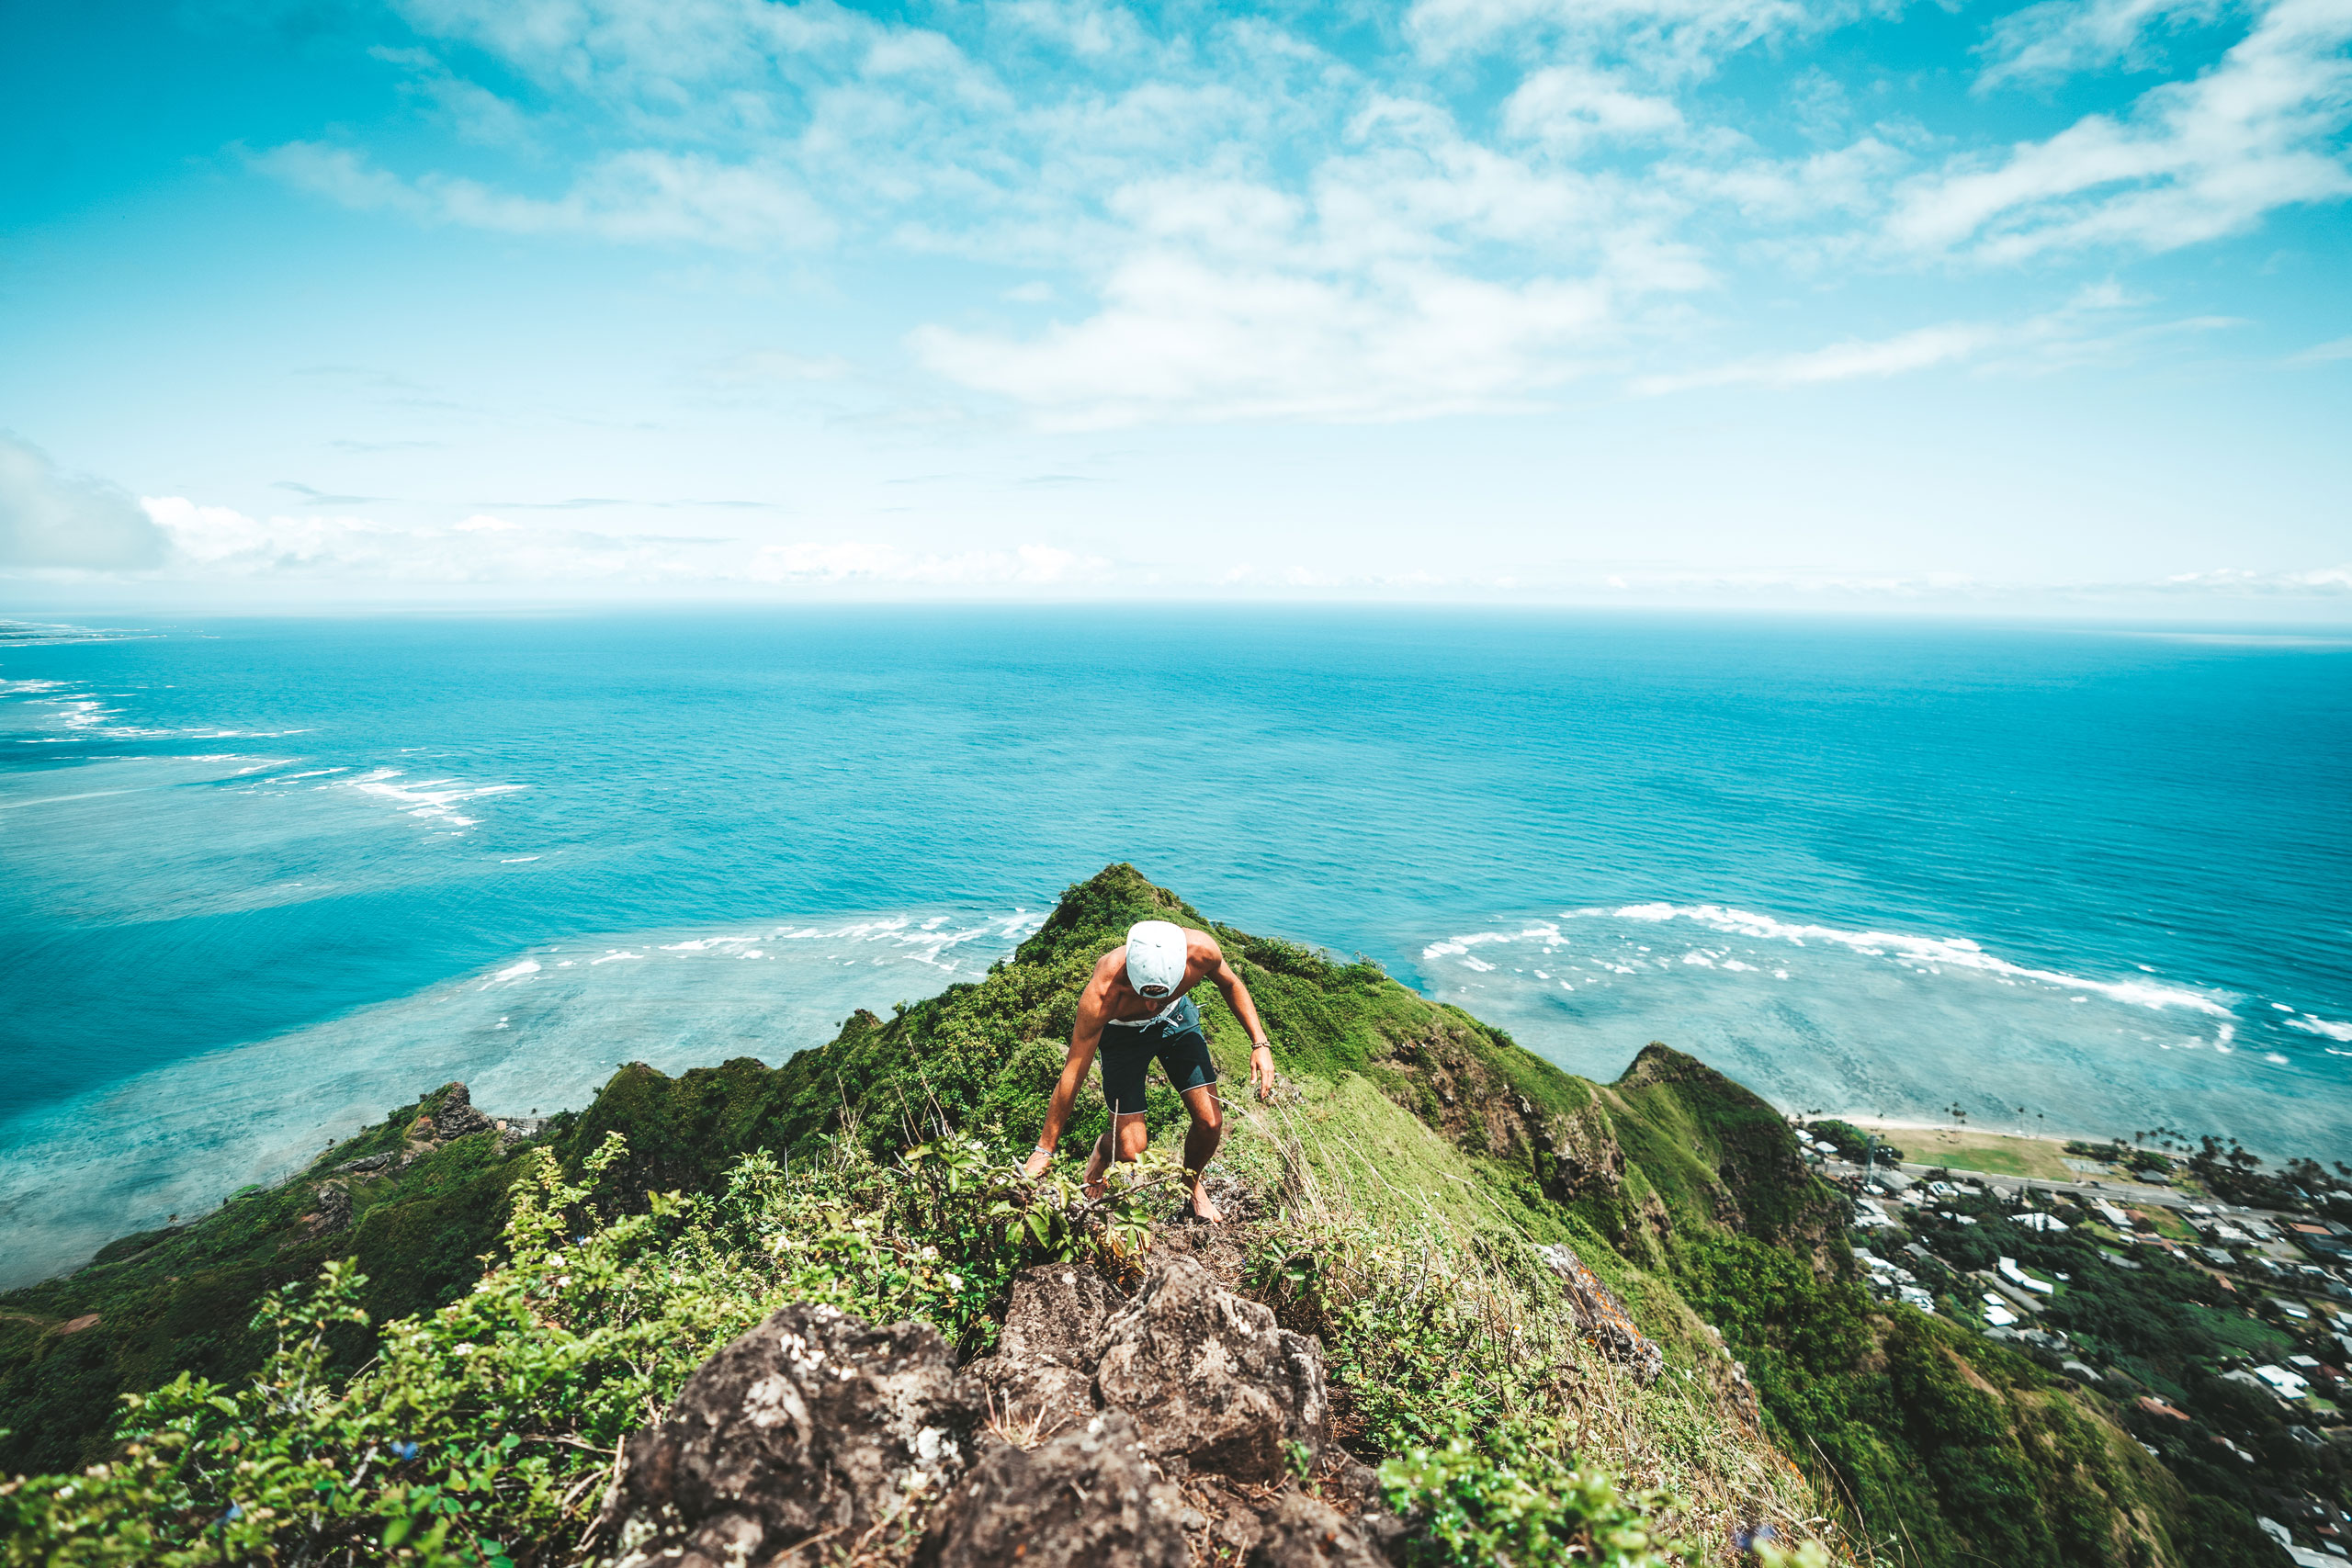 Corey Favino climbing a mountain trail in Oahu, Hawaii